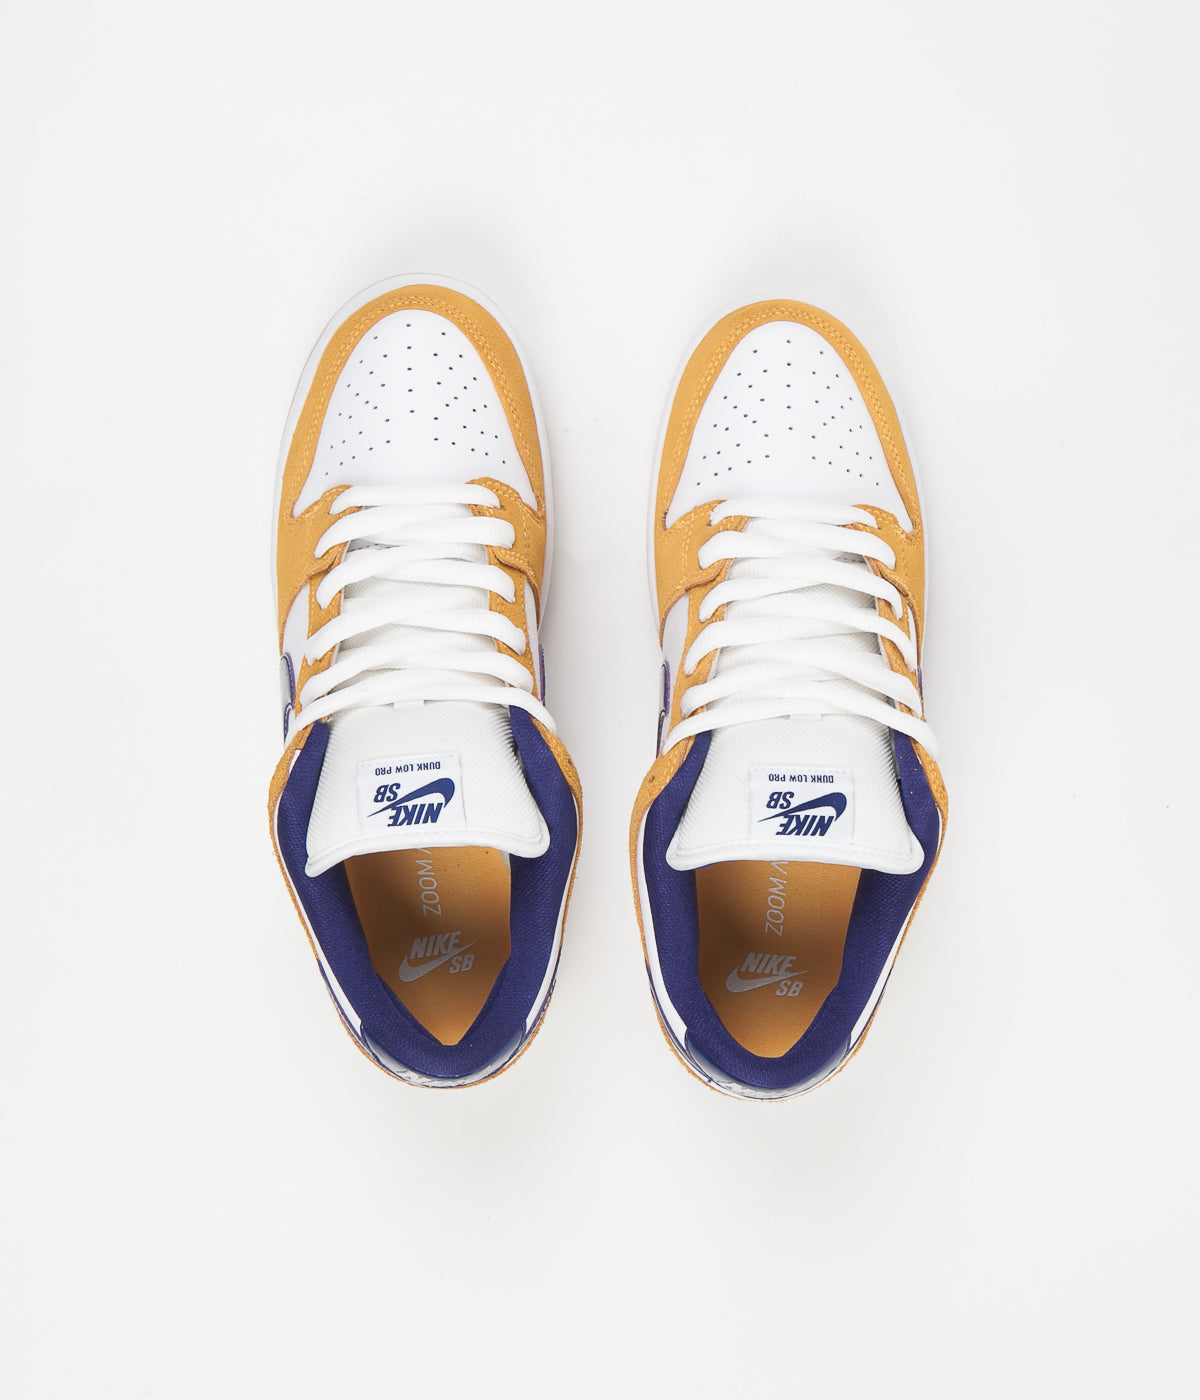 Nike SB Dunk Low Pro Shoes - Laser Orange / Regency Purple - Laser Orange